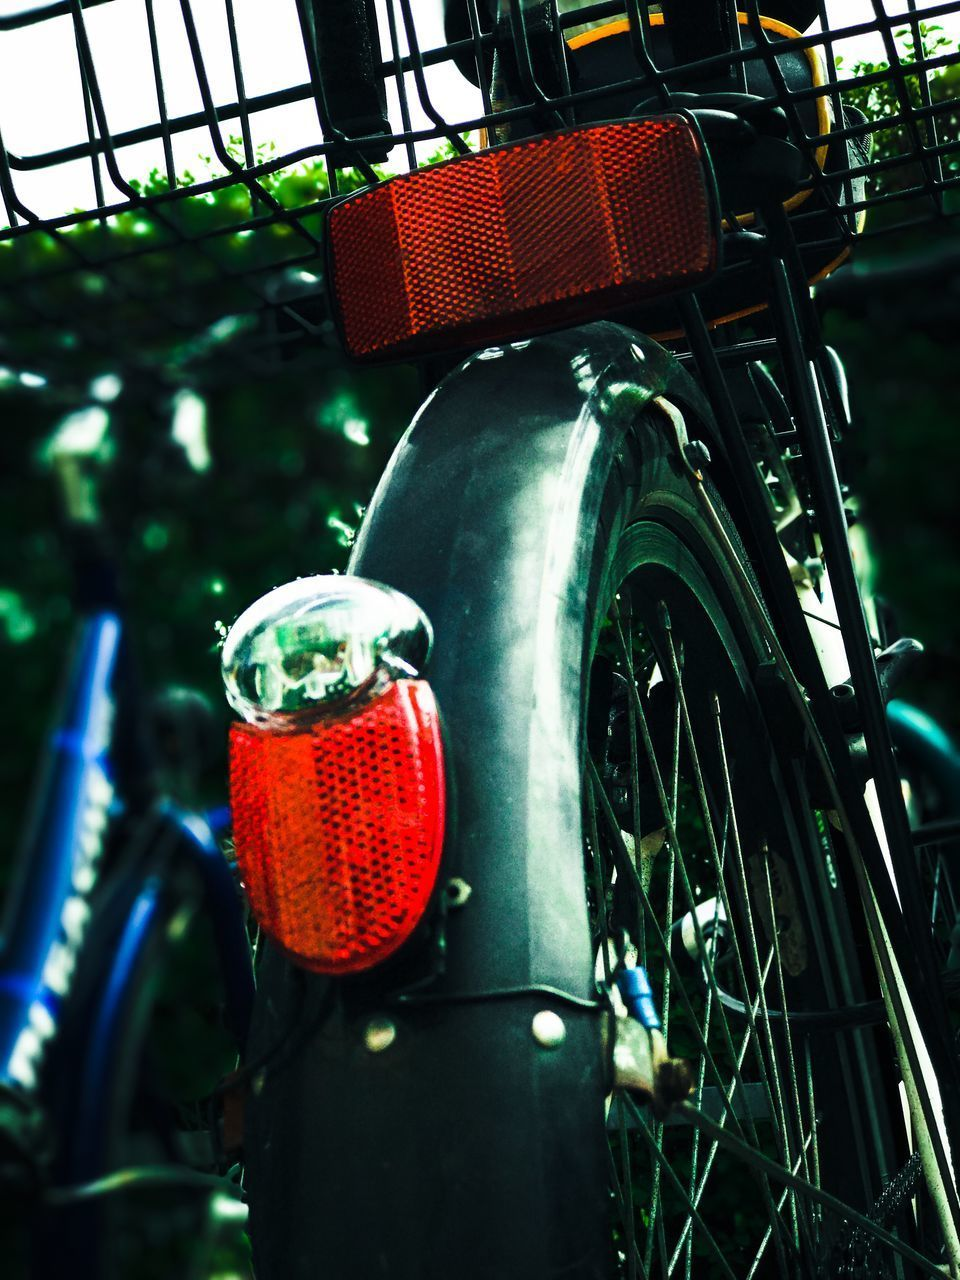 transportation, mode of transport, outdoors, no people, land vehicle, day, stationary, red, bicycle, green color, low angle view, close-up